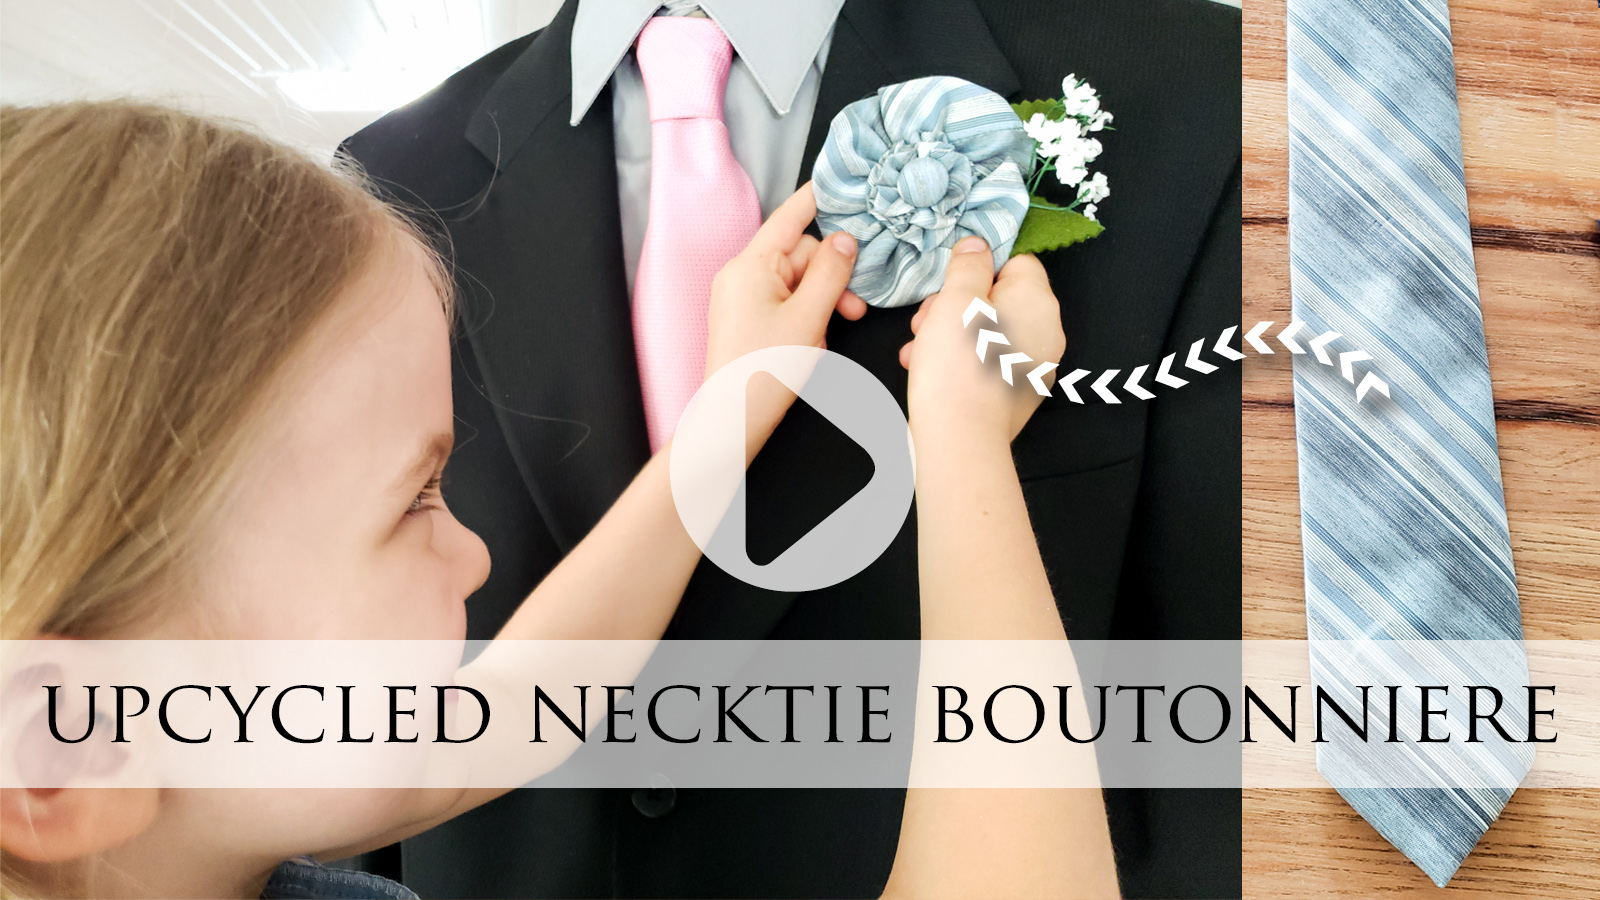 Video Tutorial for Upcycled Necktie Boutonniere for Father's Day | prodigalpieces.com #prodigalpieces #diy #refashion #fathersday #crafts